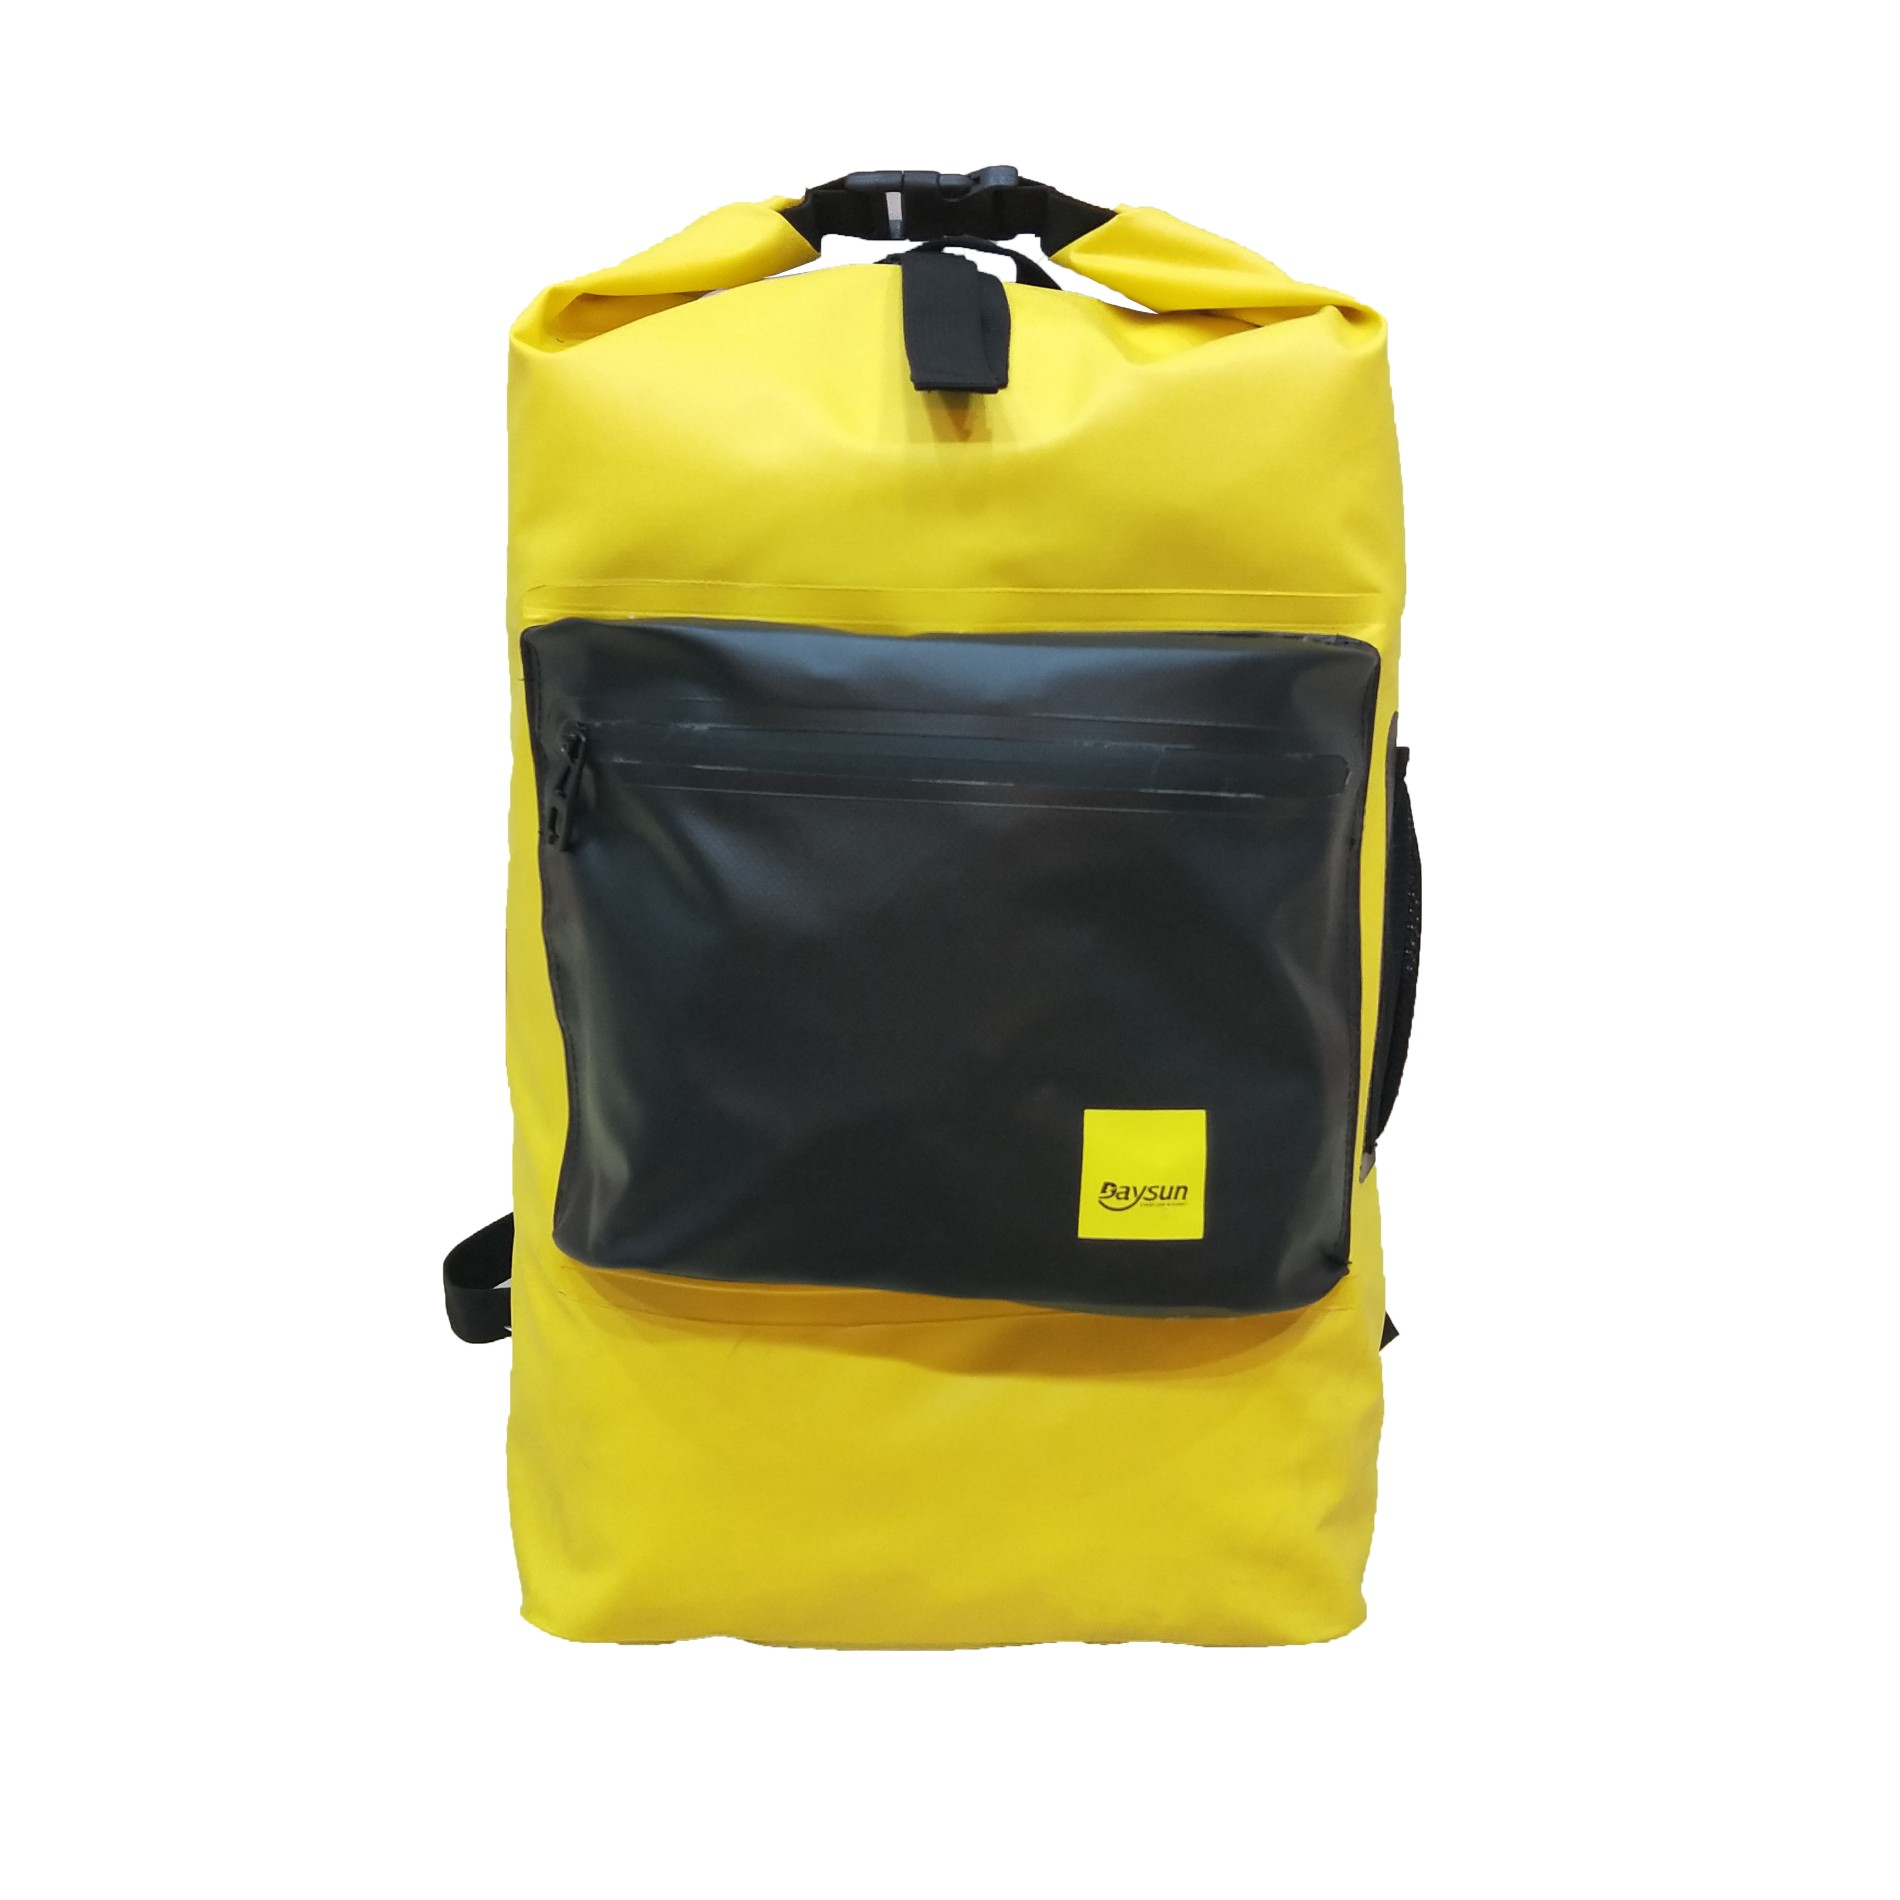 Waterproof Backpack Dry Bag